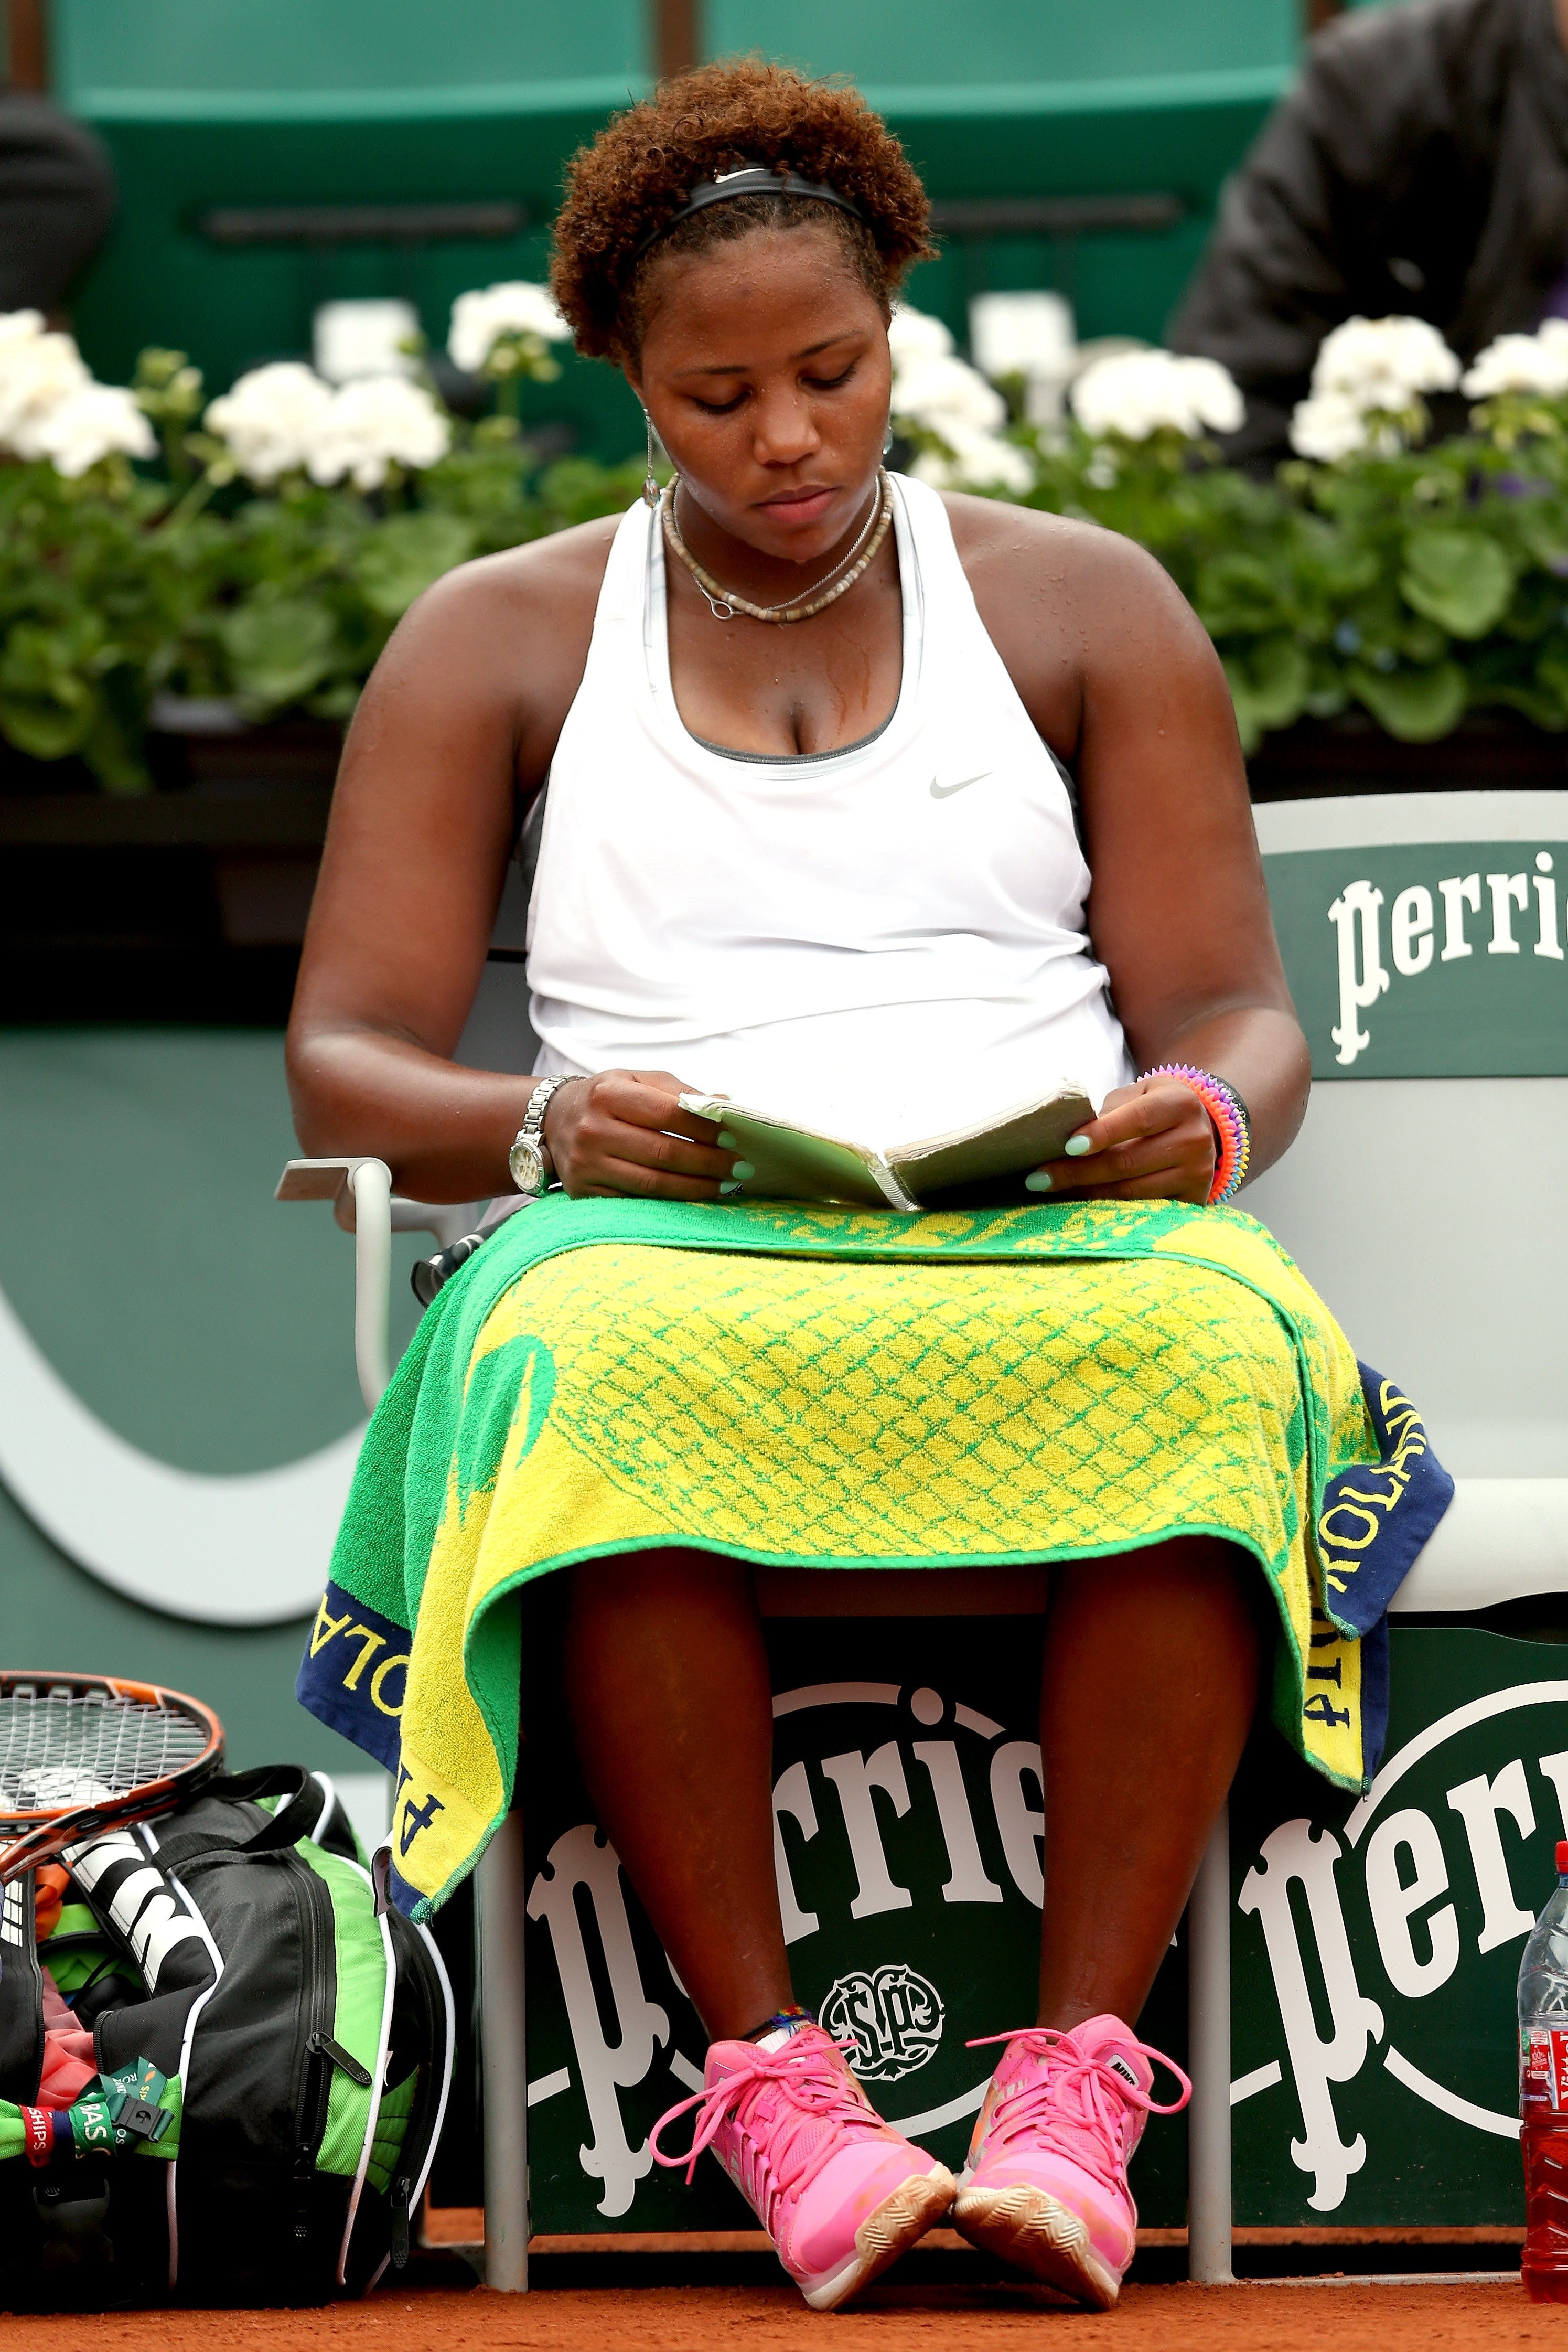 Taylor Townsend of the United States reads a book during a break in her women's singles match against Alize Cornet of France on day four of the French Open at Roland Garros on May 28, 2014 in Paris, France.